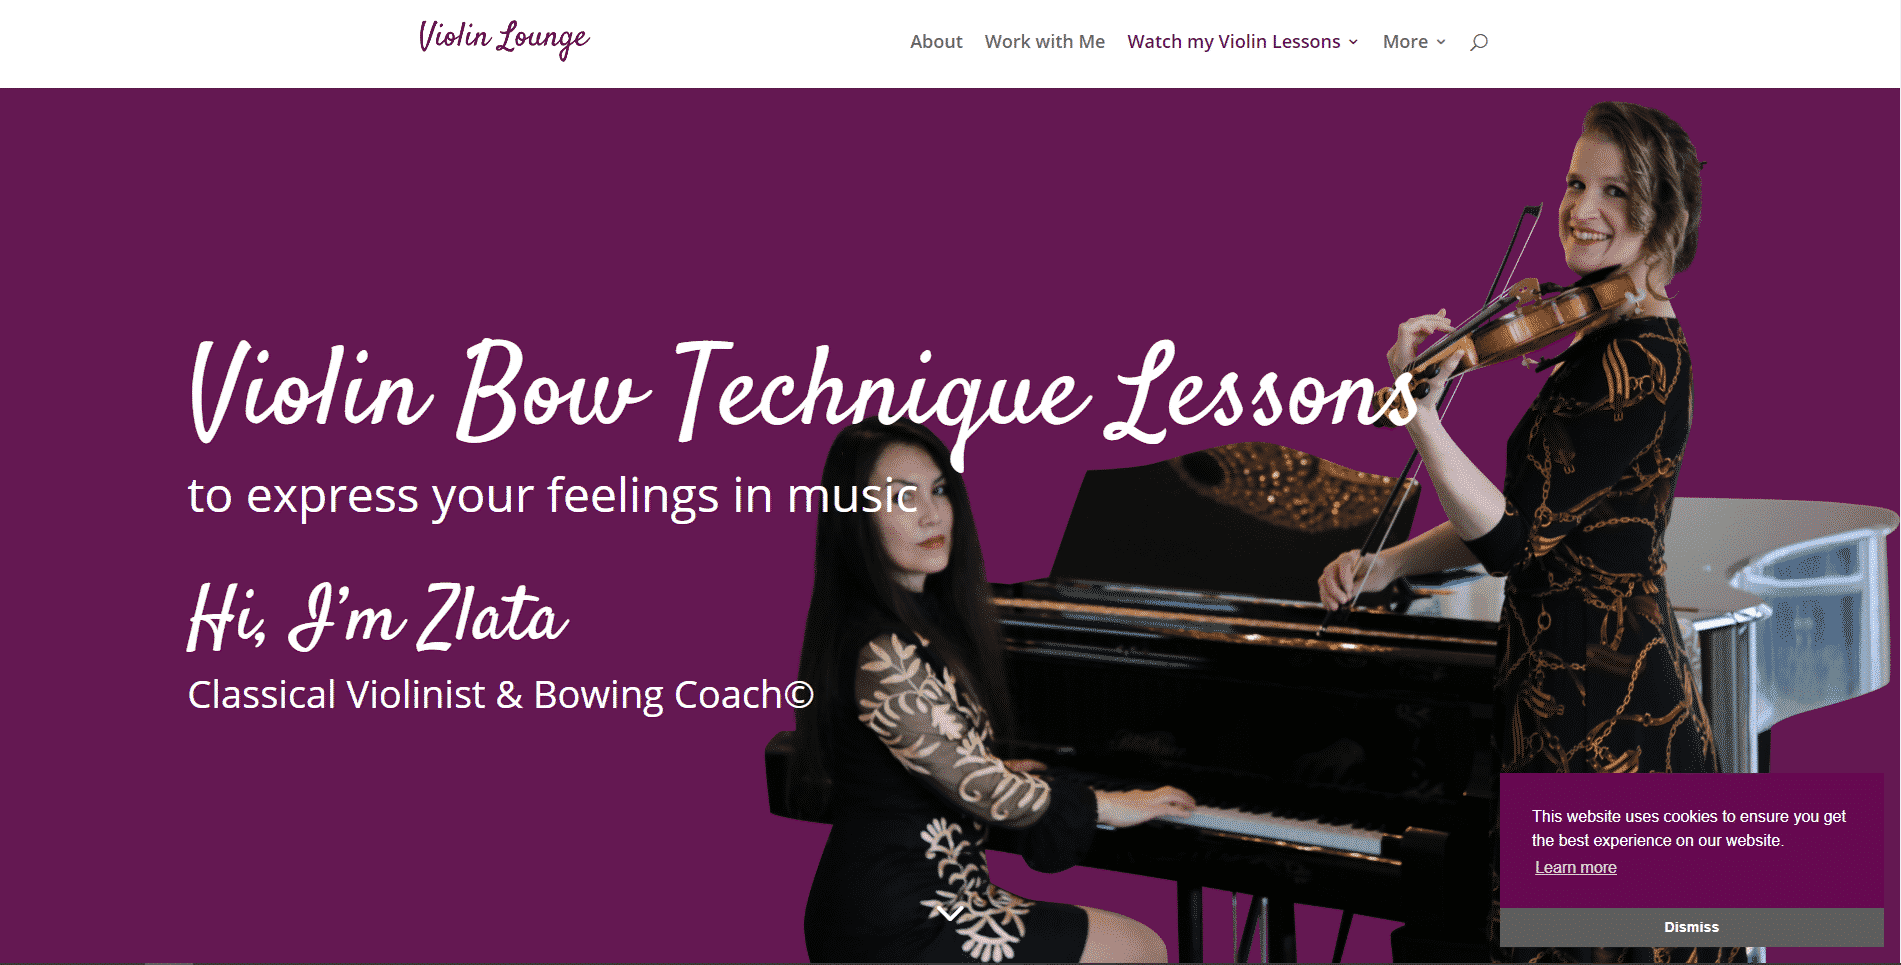 Violin Lounge Learn violin lessson for Intermediate